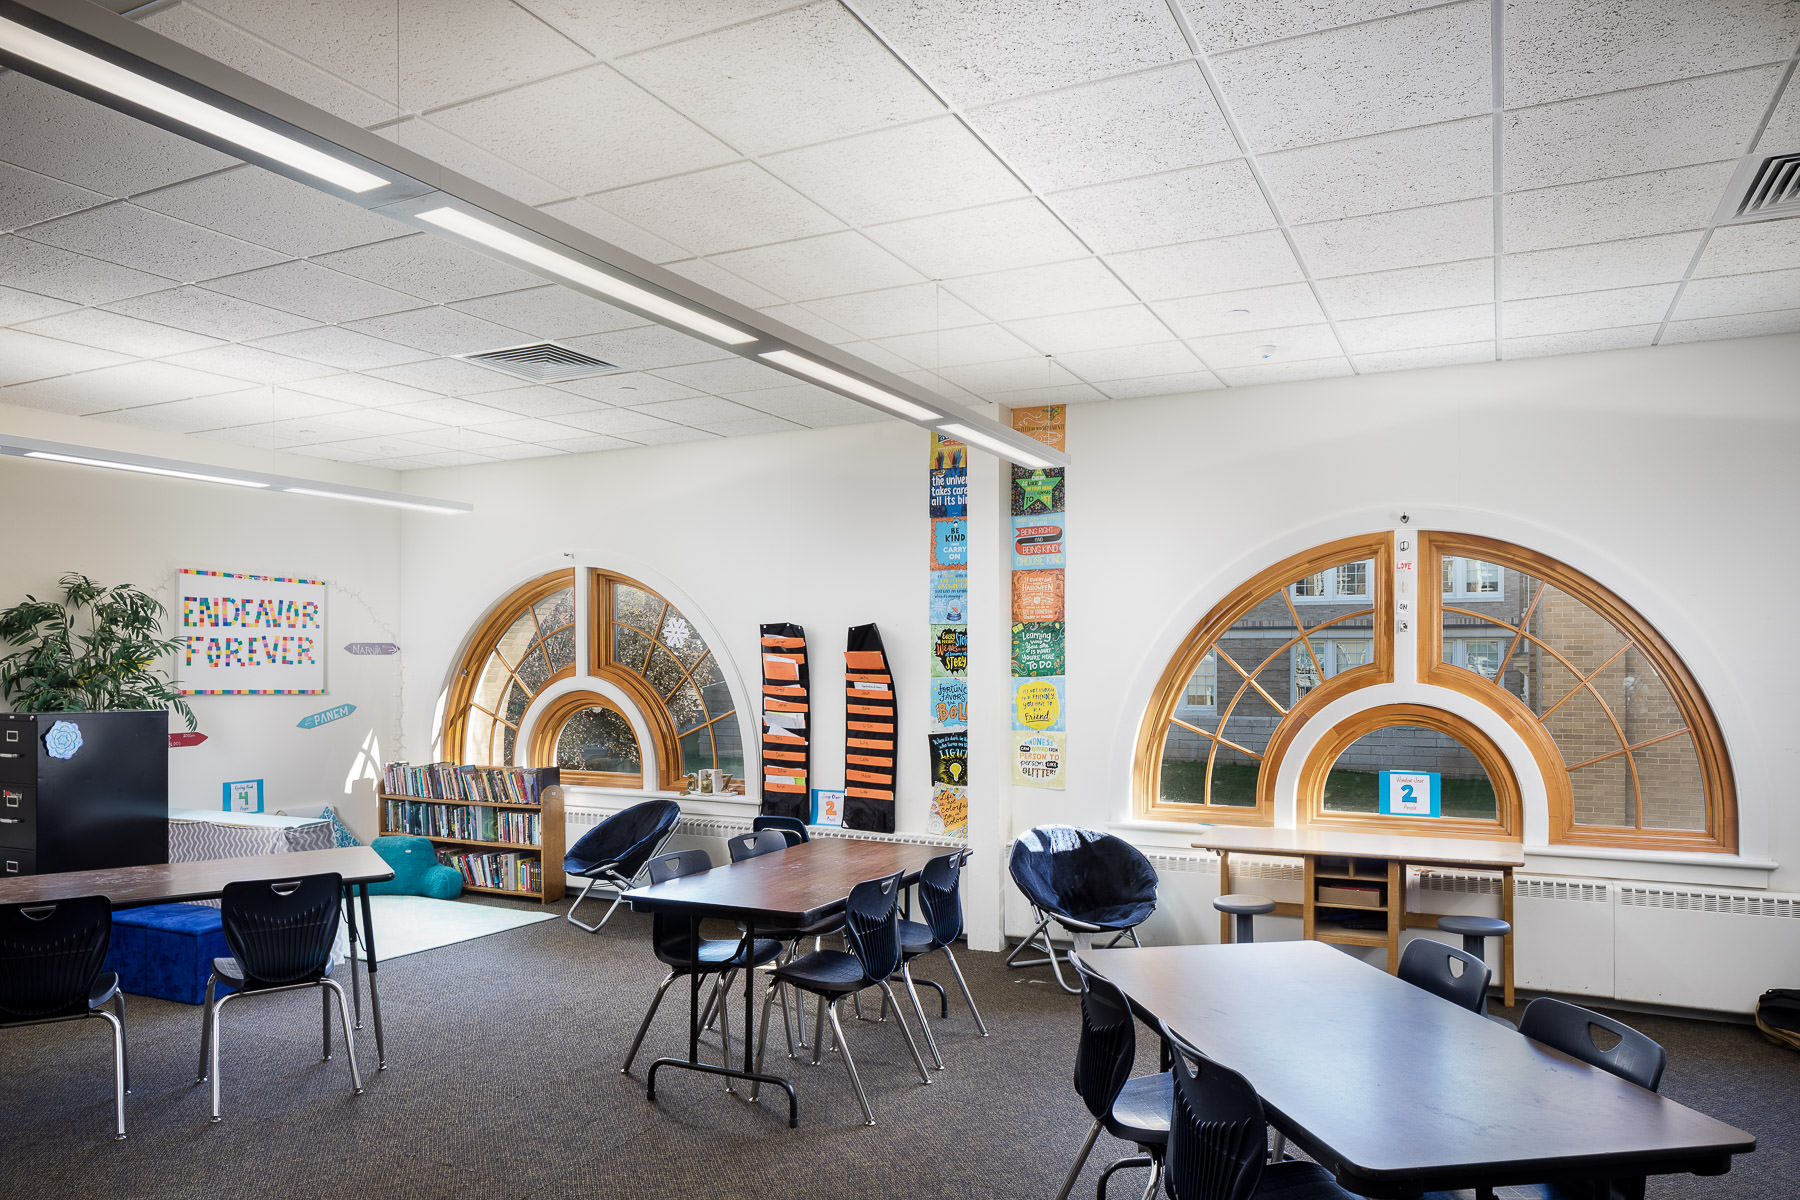 A renovated classroom featuring large arched windows in Edmunds Elementary School in Burlington completed by Neagley & Chase Construction and photographed by Stina Booth Vermont commercial photography